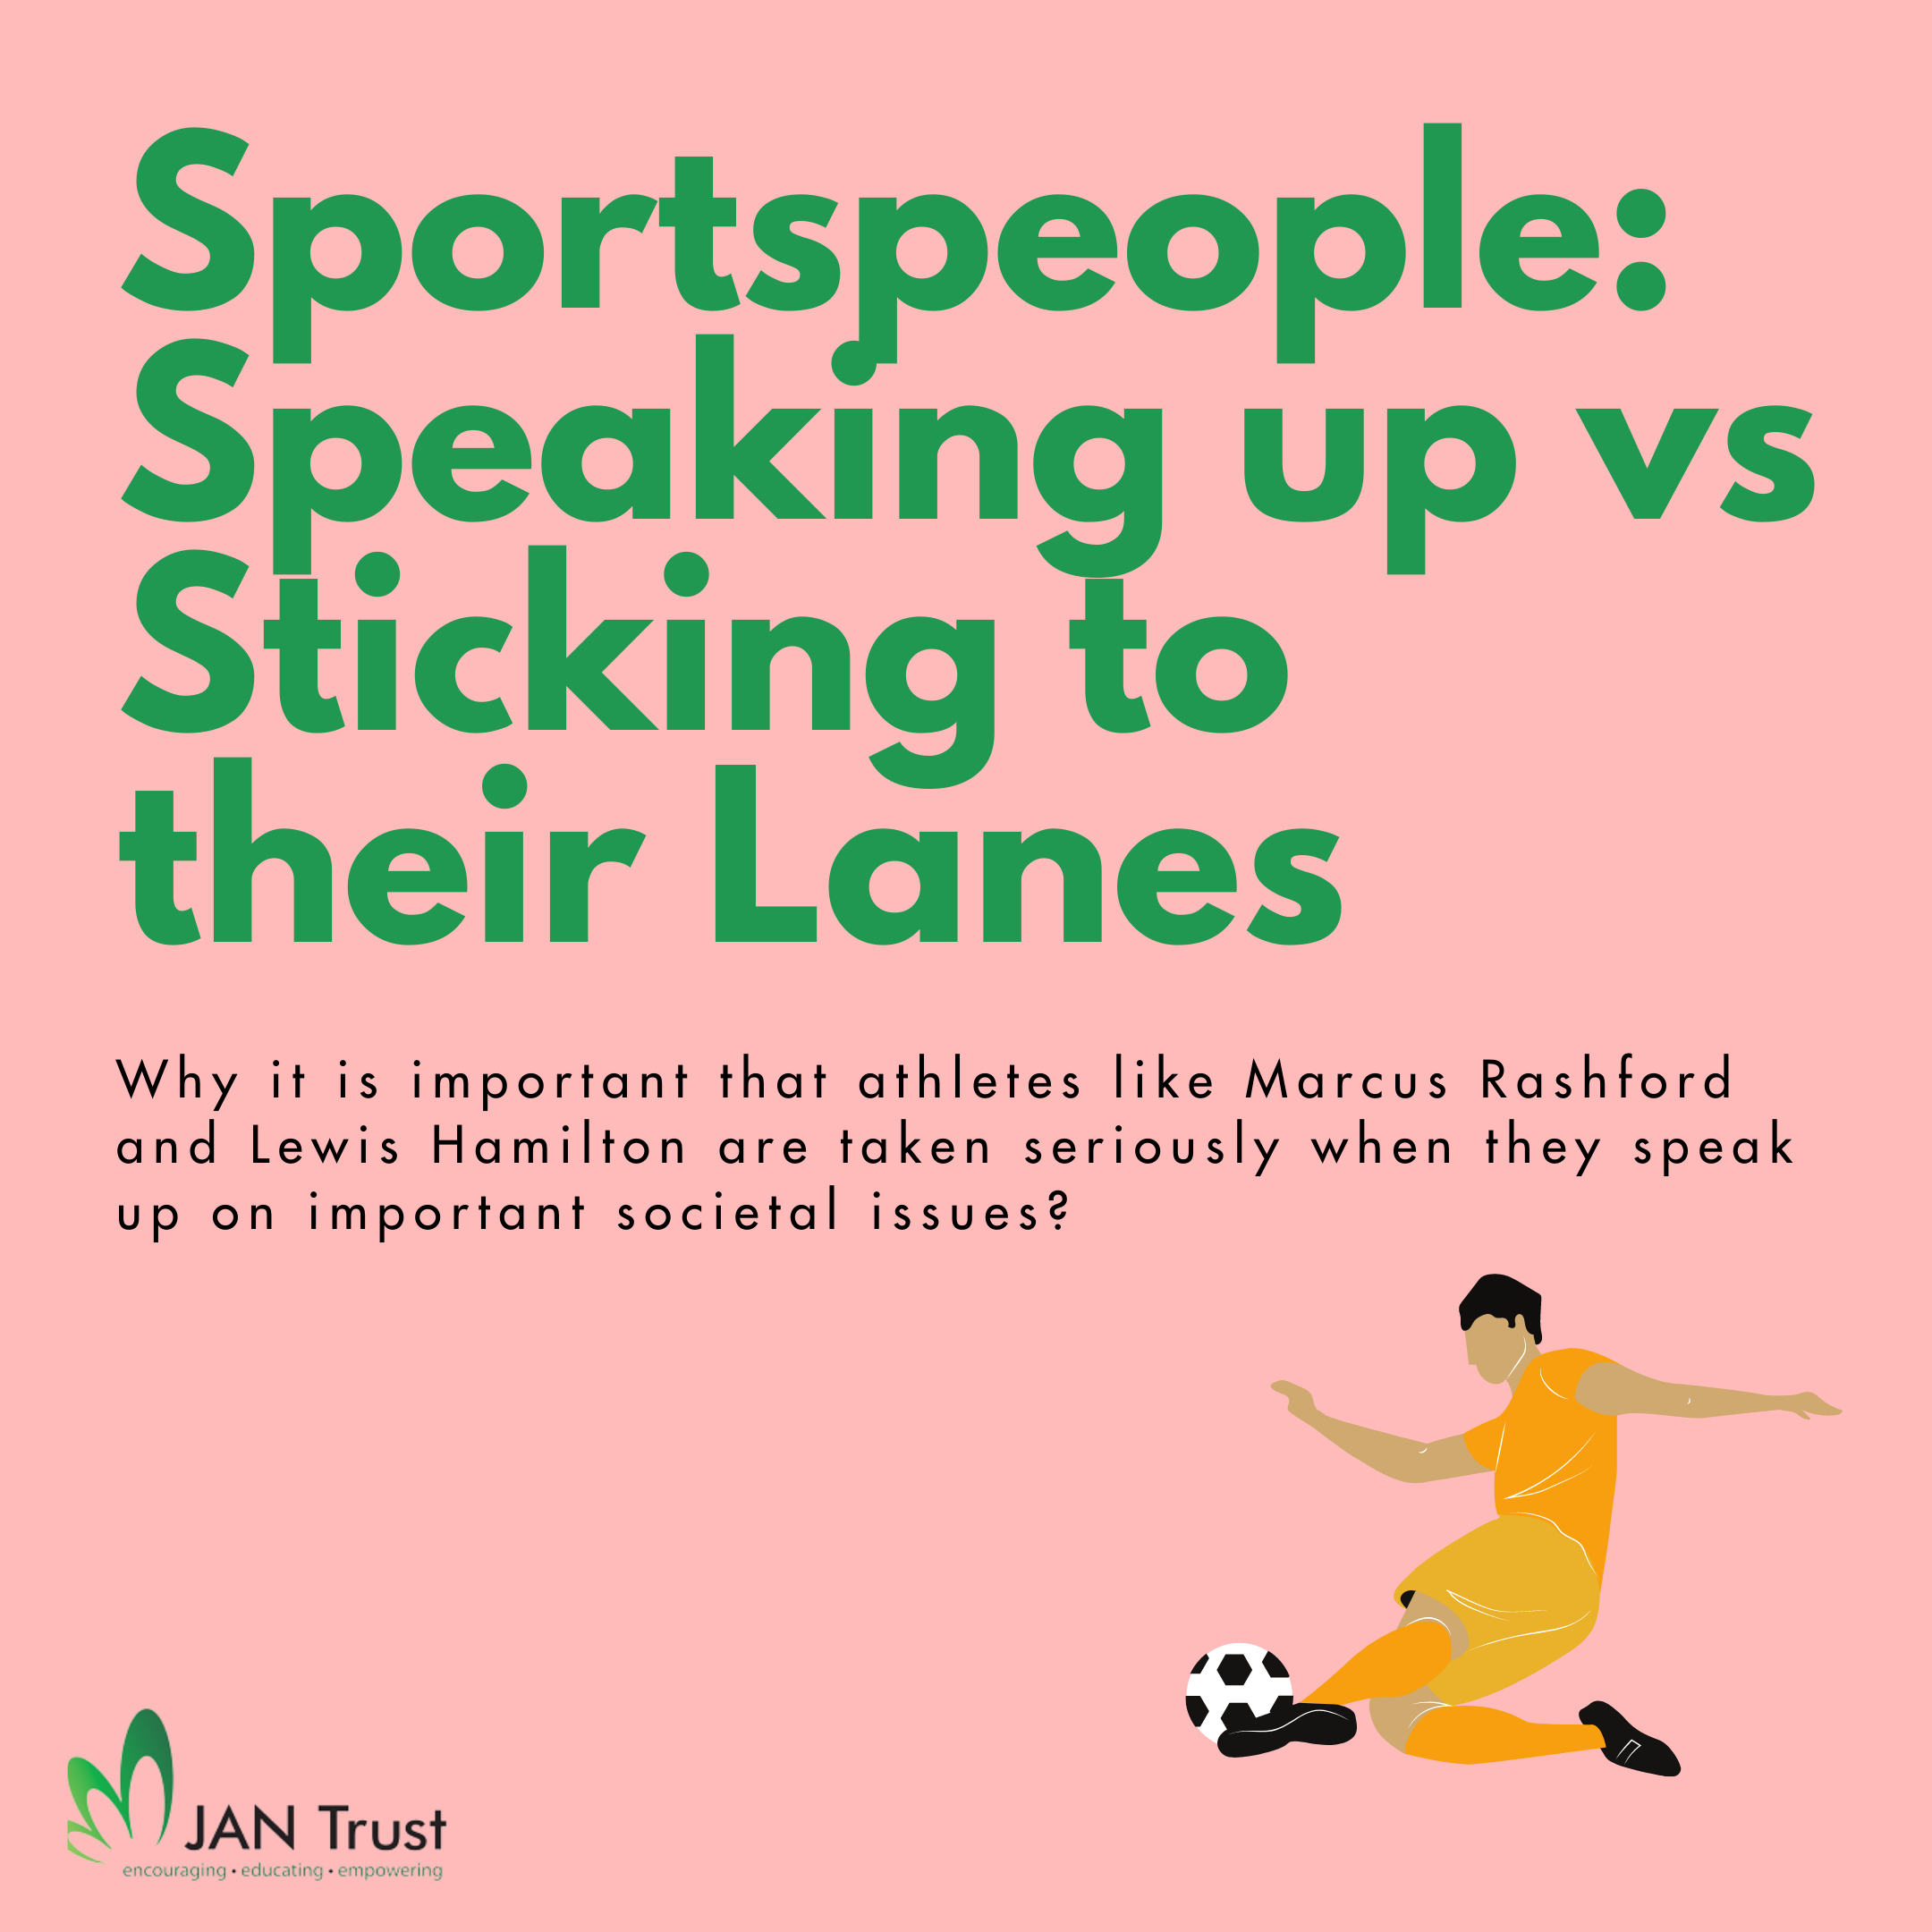 Sportspeople: Speaking Up vs Sticking to Their Lanes